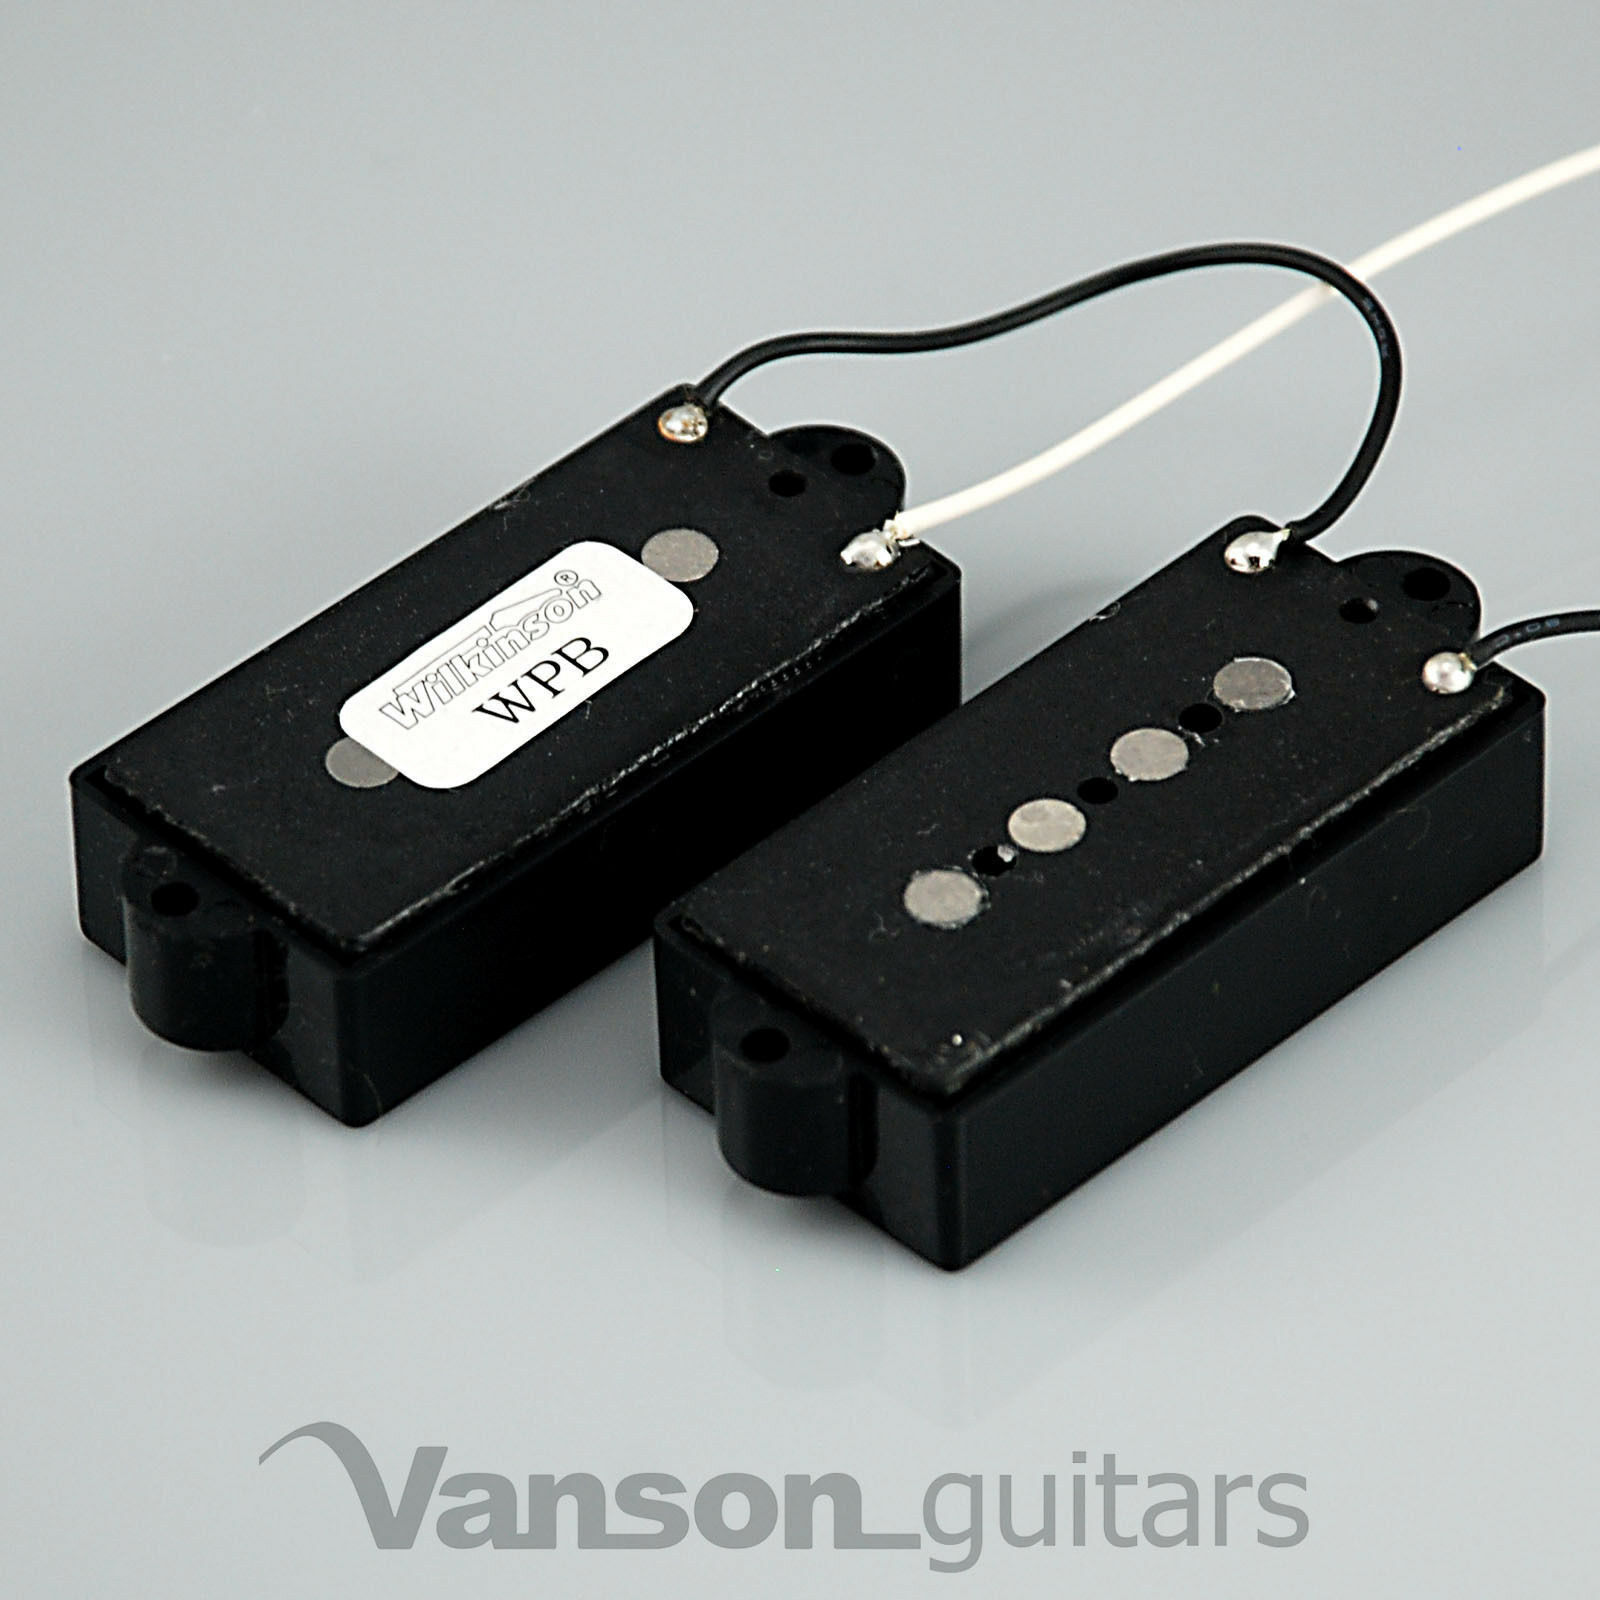 Wilkinson Wpb Alnico V Bass Pickups For Pb Type Guitars Precision Pickup Wiring Diagram Norton Secured Powered By Verisign